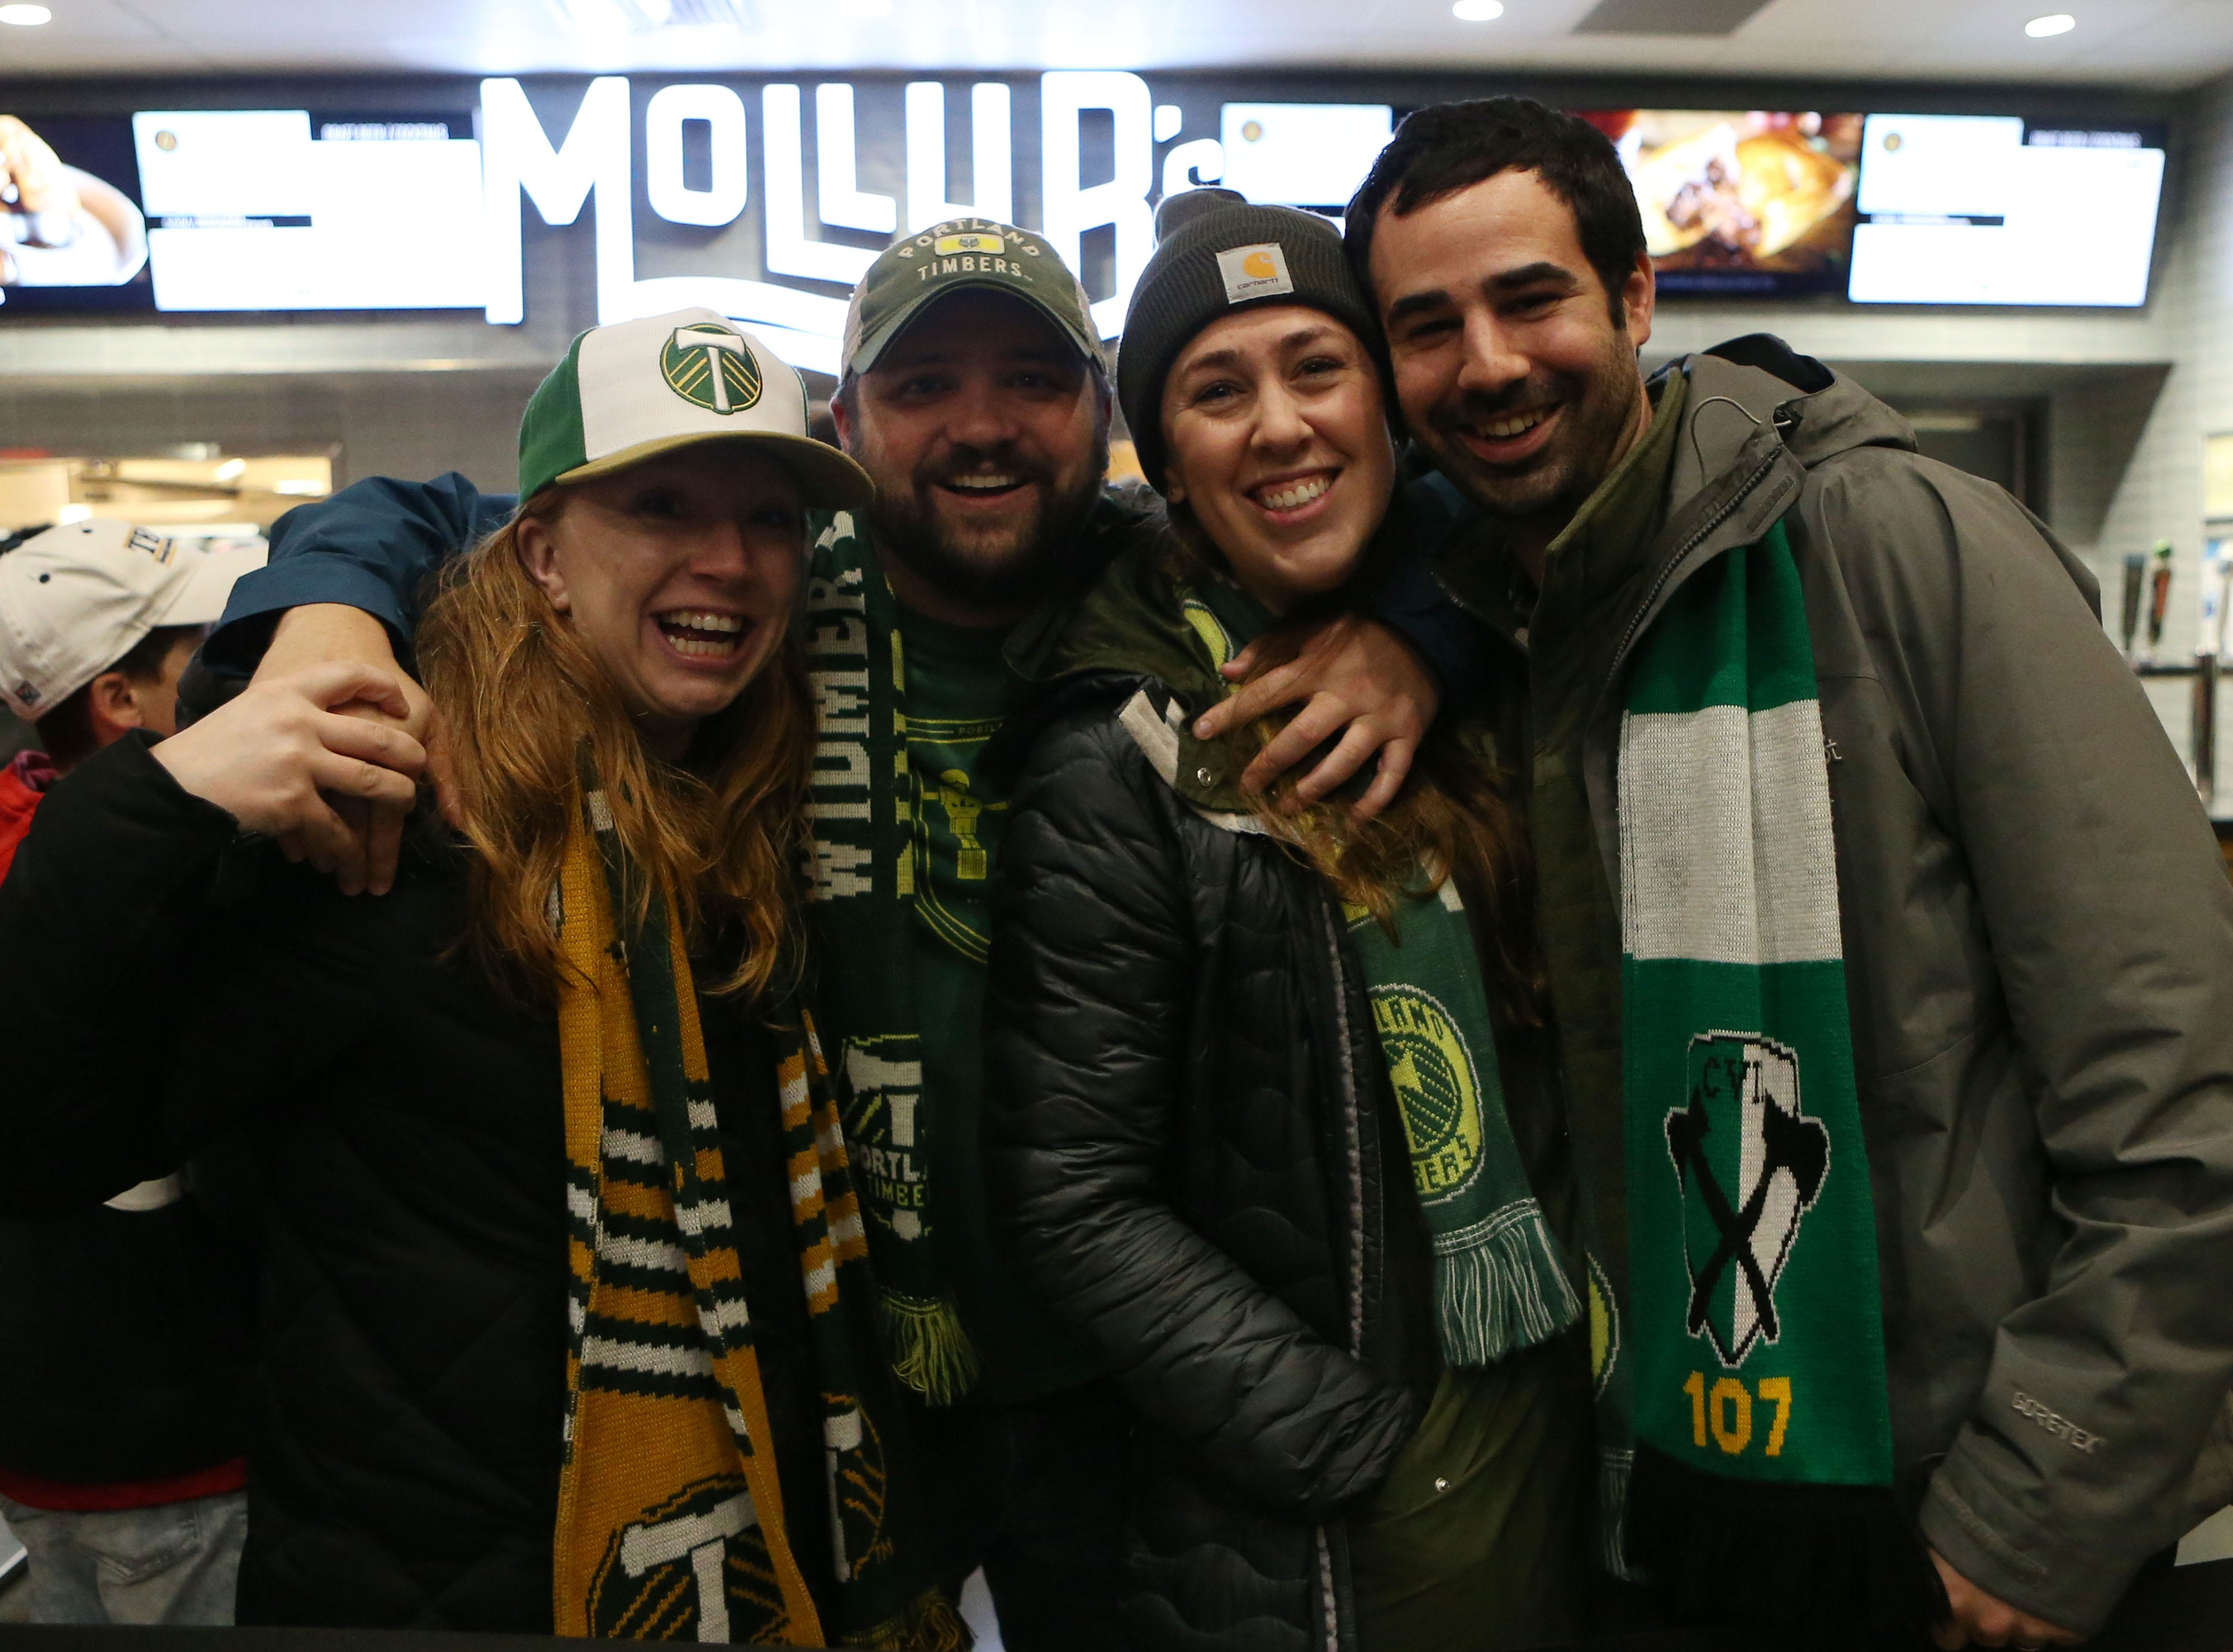 Portland fans (from left to right) Aubrey Nichols, Alex Nichols, Sam Poehlman, and Thomas Stuyvesant rock their Timbers gear prior to the 2018 MLS Cup championship game.